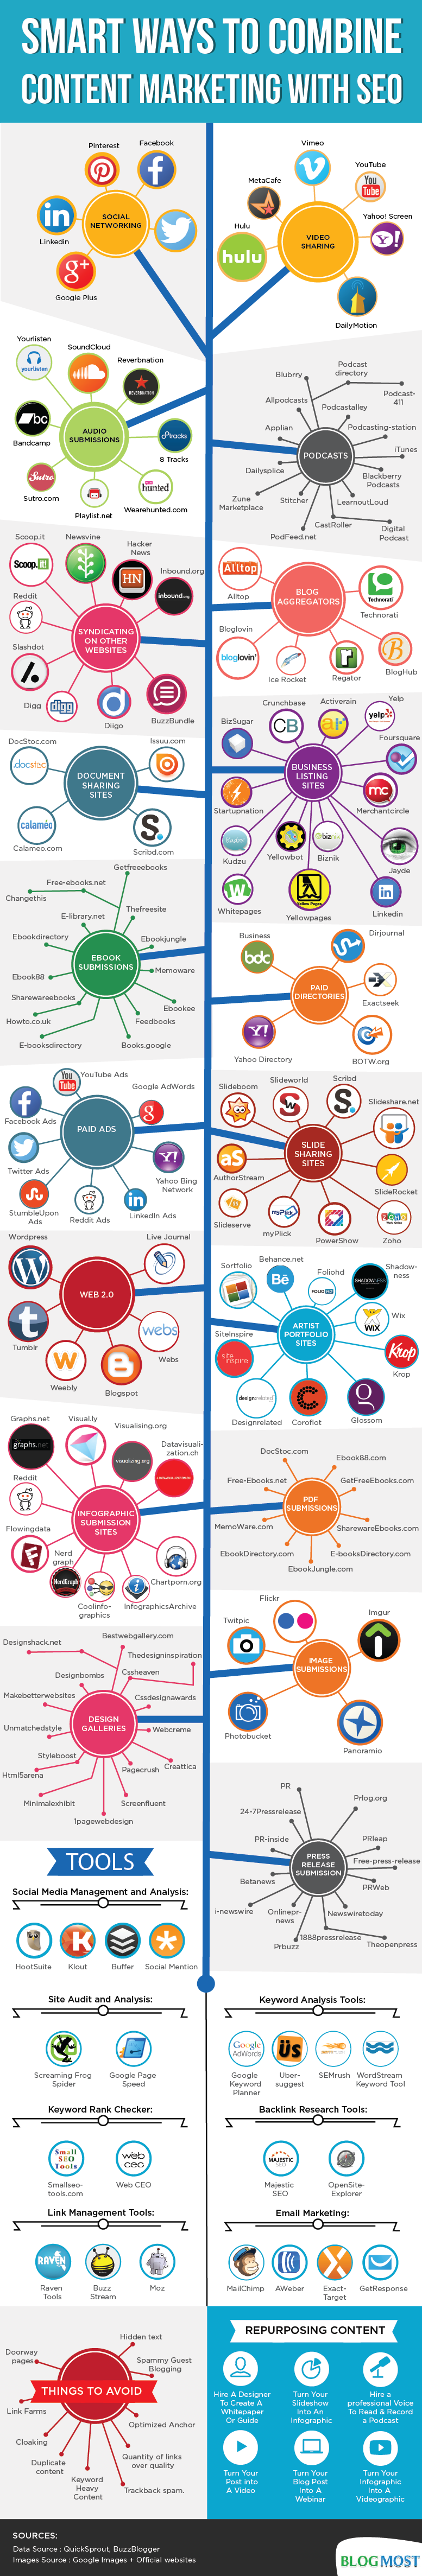 Little known ways to build high quality backlinks in 2014 - #infographic